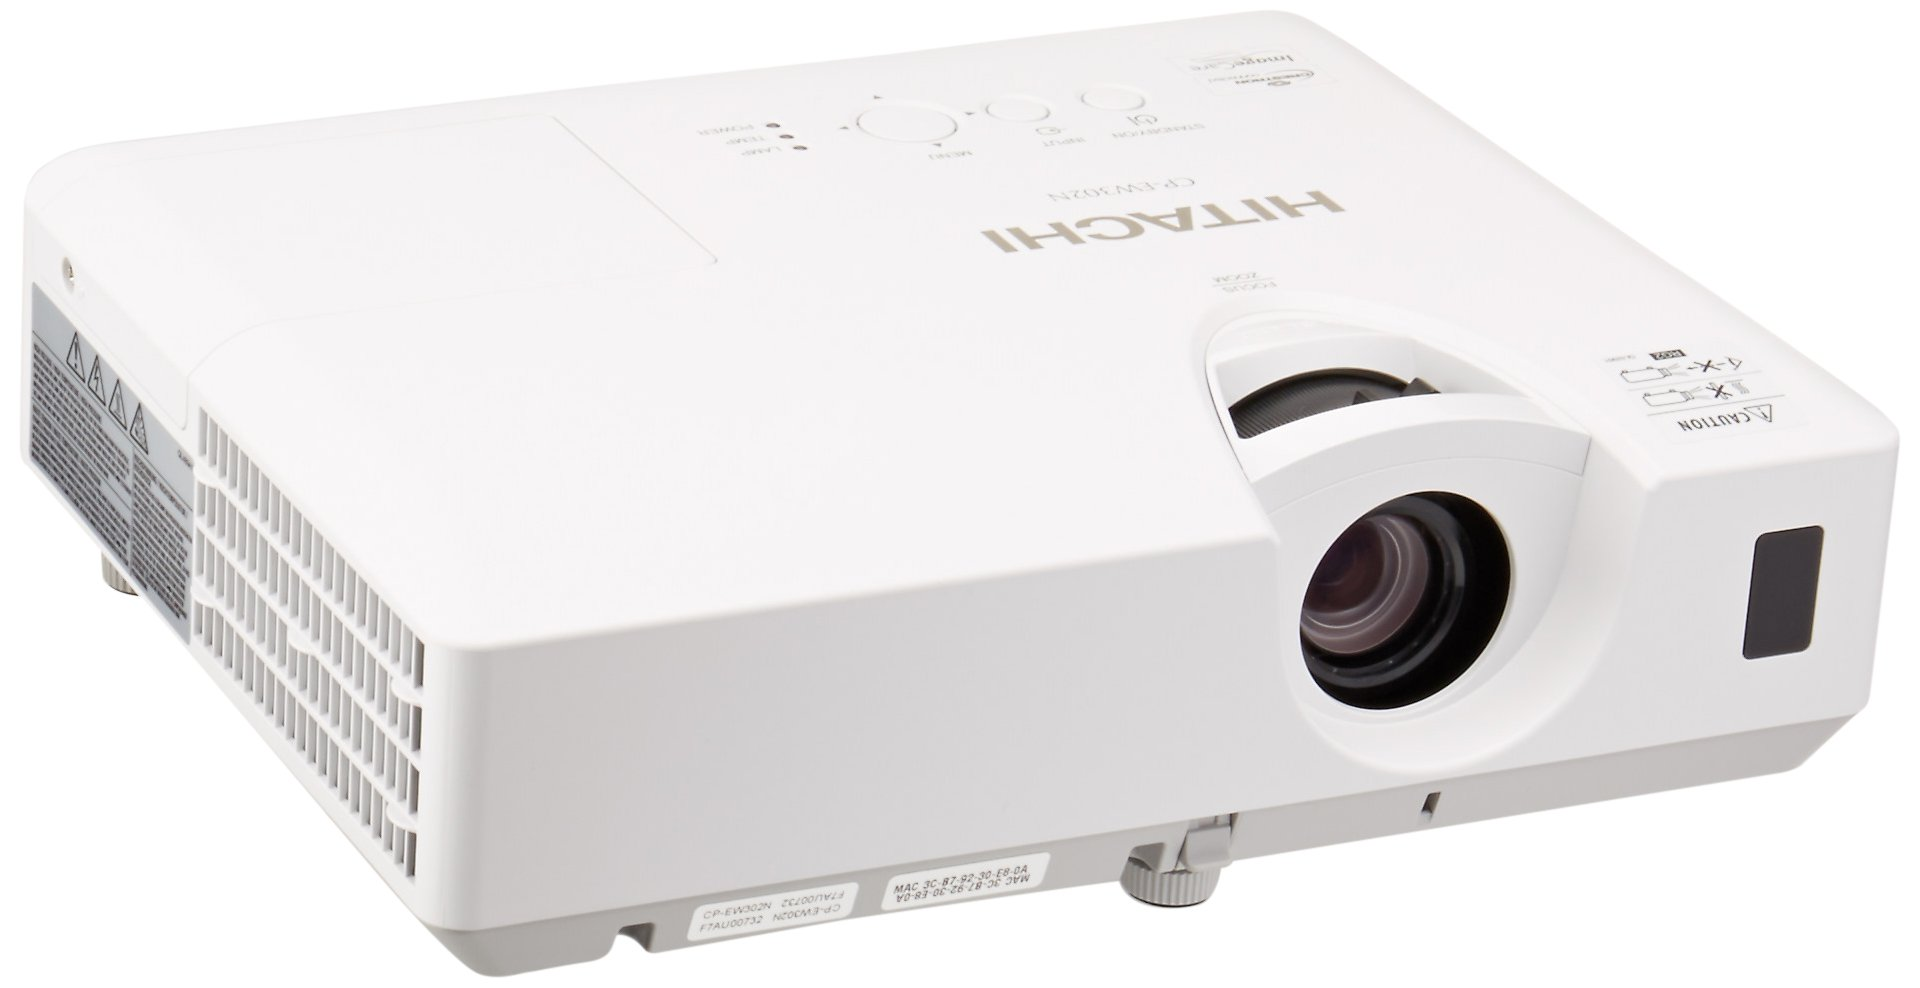 Hitachi CP-EW302N LCD Projector, 3000 ANSI Lumens White/color output, WXGA 1280 x 800 Resolution, 16W Audio Output, One HDMI Input, 10000 Hours Lamp Life, Embedded Networking, PIN Lock Protection